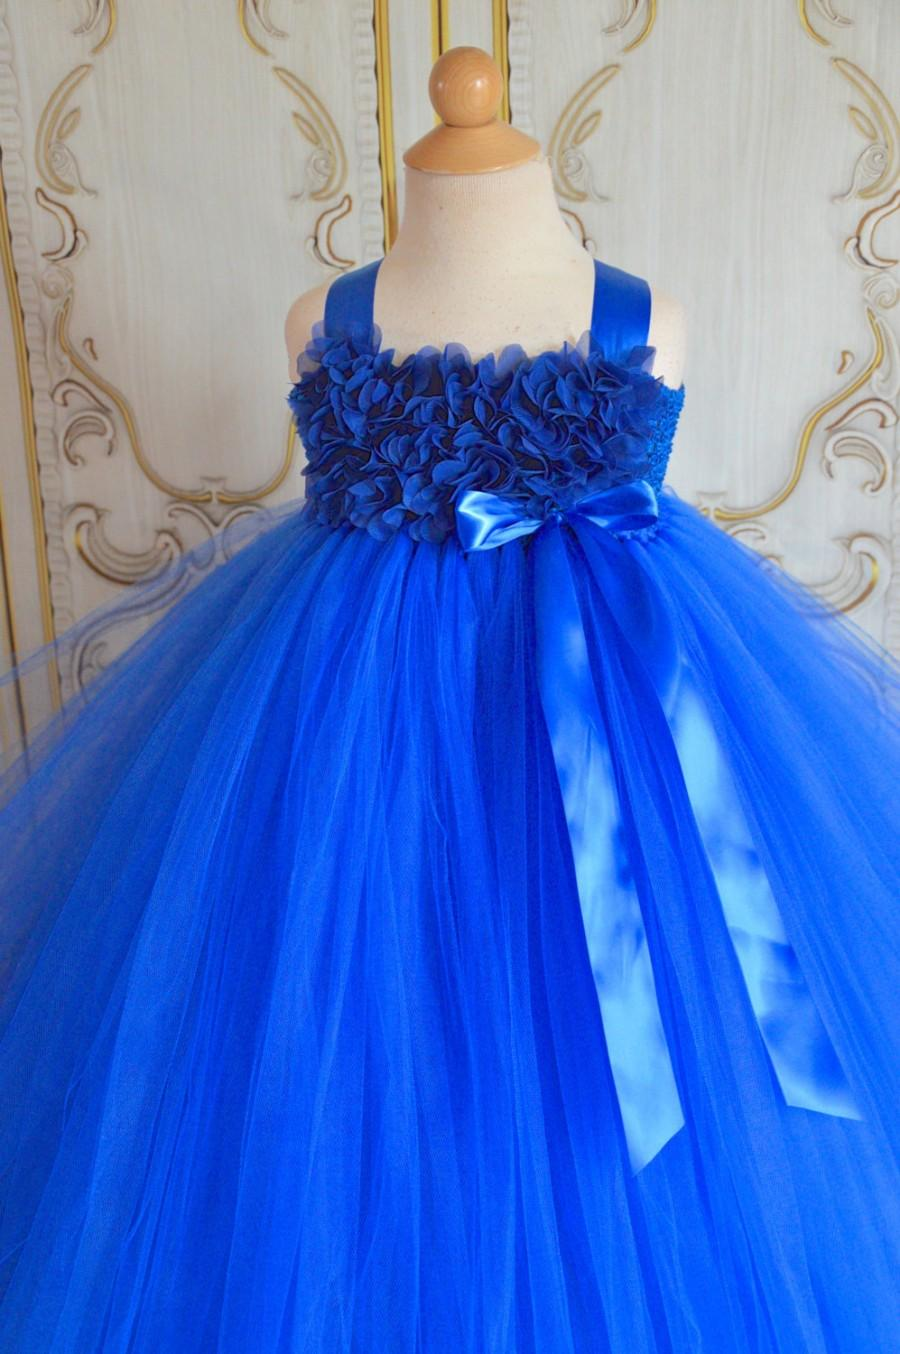 ad70dc3edac Horizon Royal Blue Chiffon Hydrangea Flower Girl Tutu Dress  2650780 ...